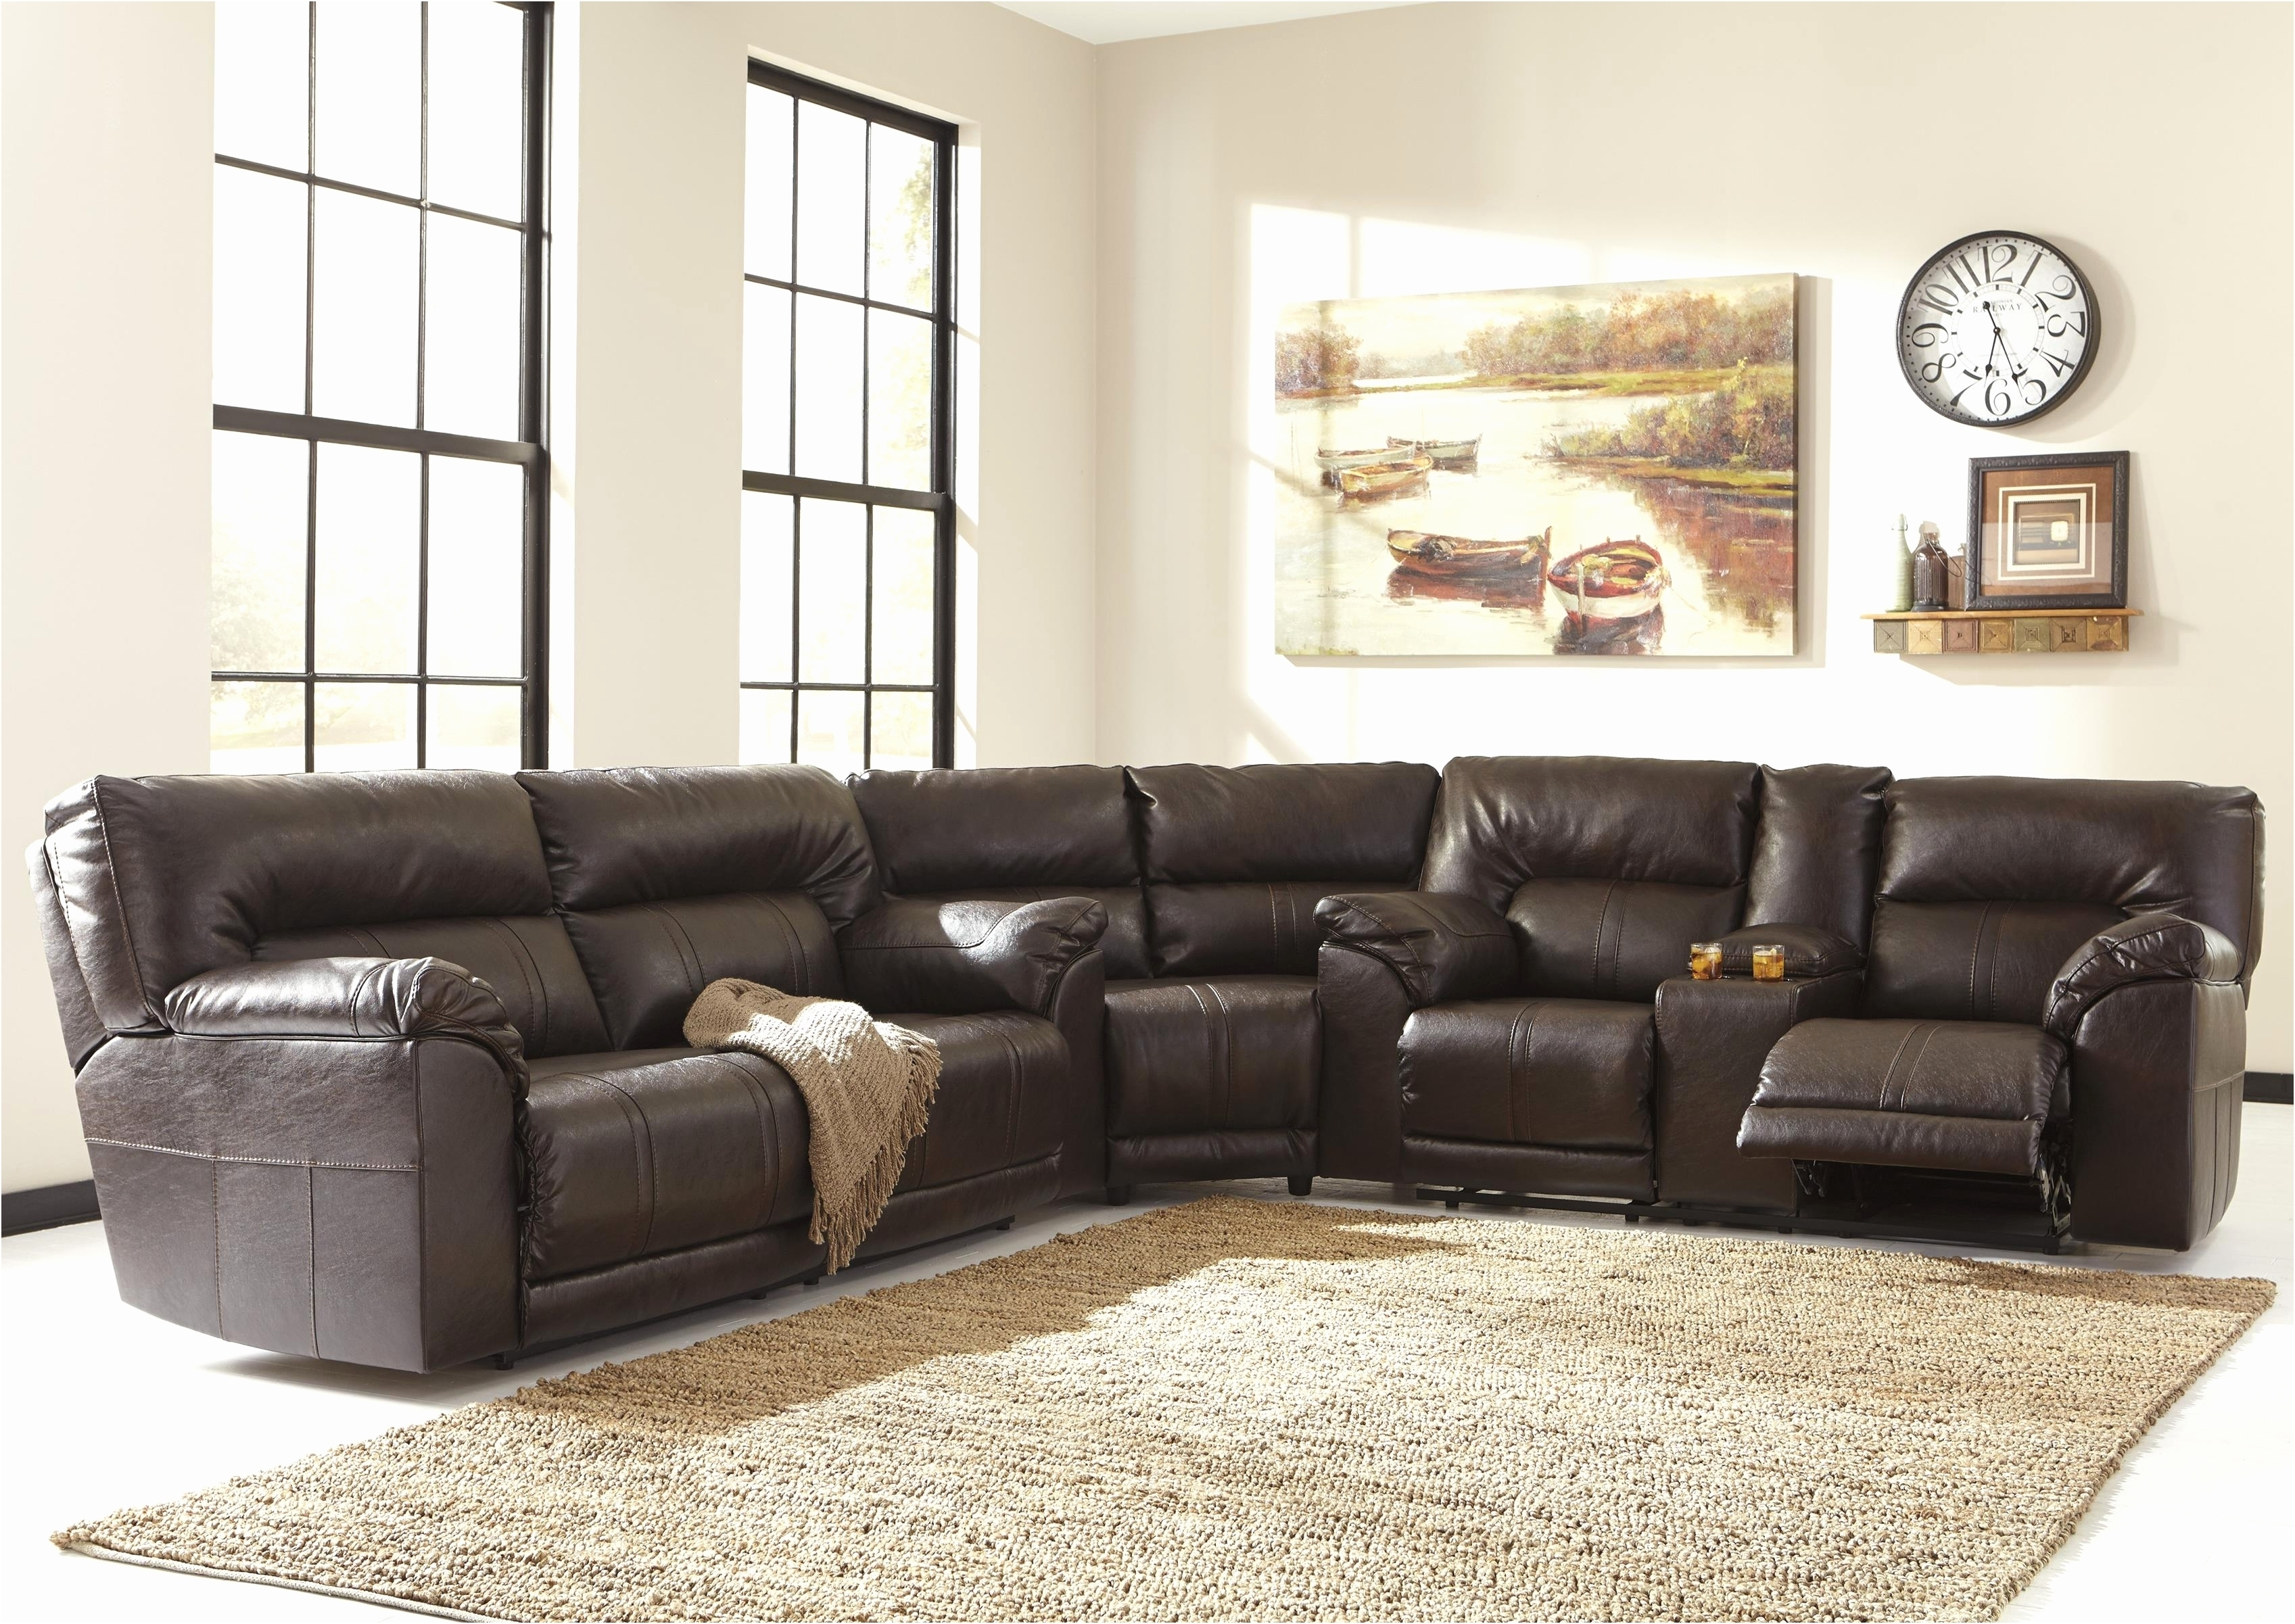 Maryland Sofas Intended For Well Known Incredible Sectional Sofas Maryland – Mediasupload (View 5 of 15)